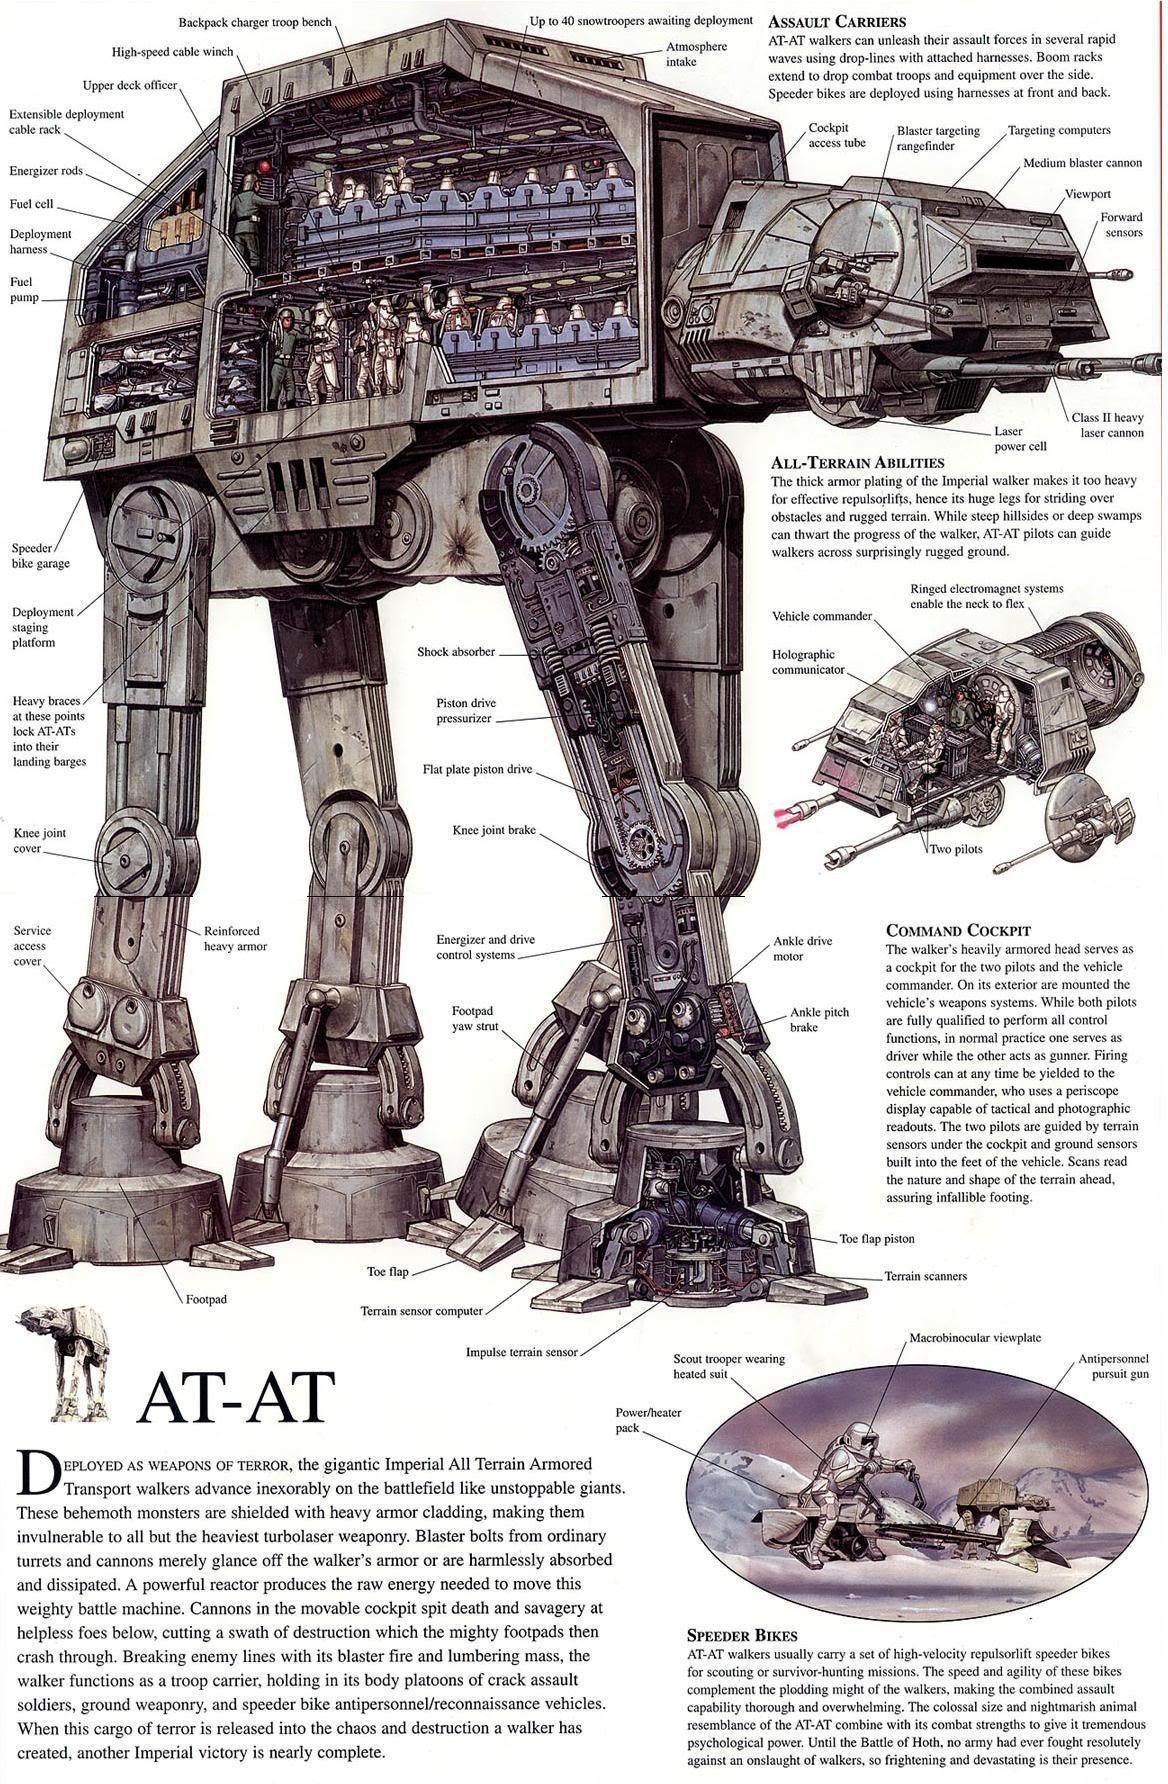 ATAT Cross Section Diagram Star wars ships, Star wars